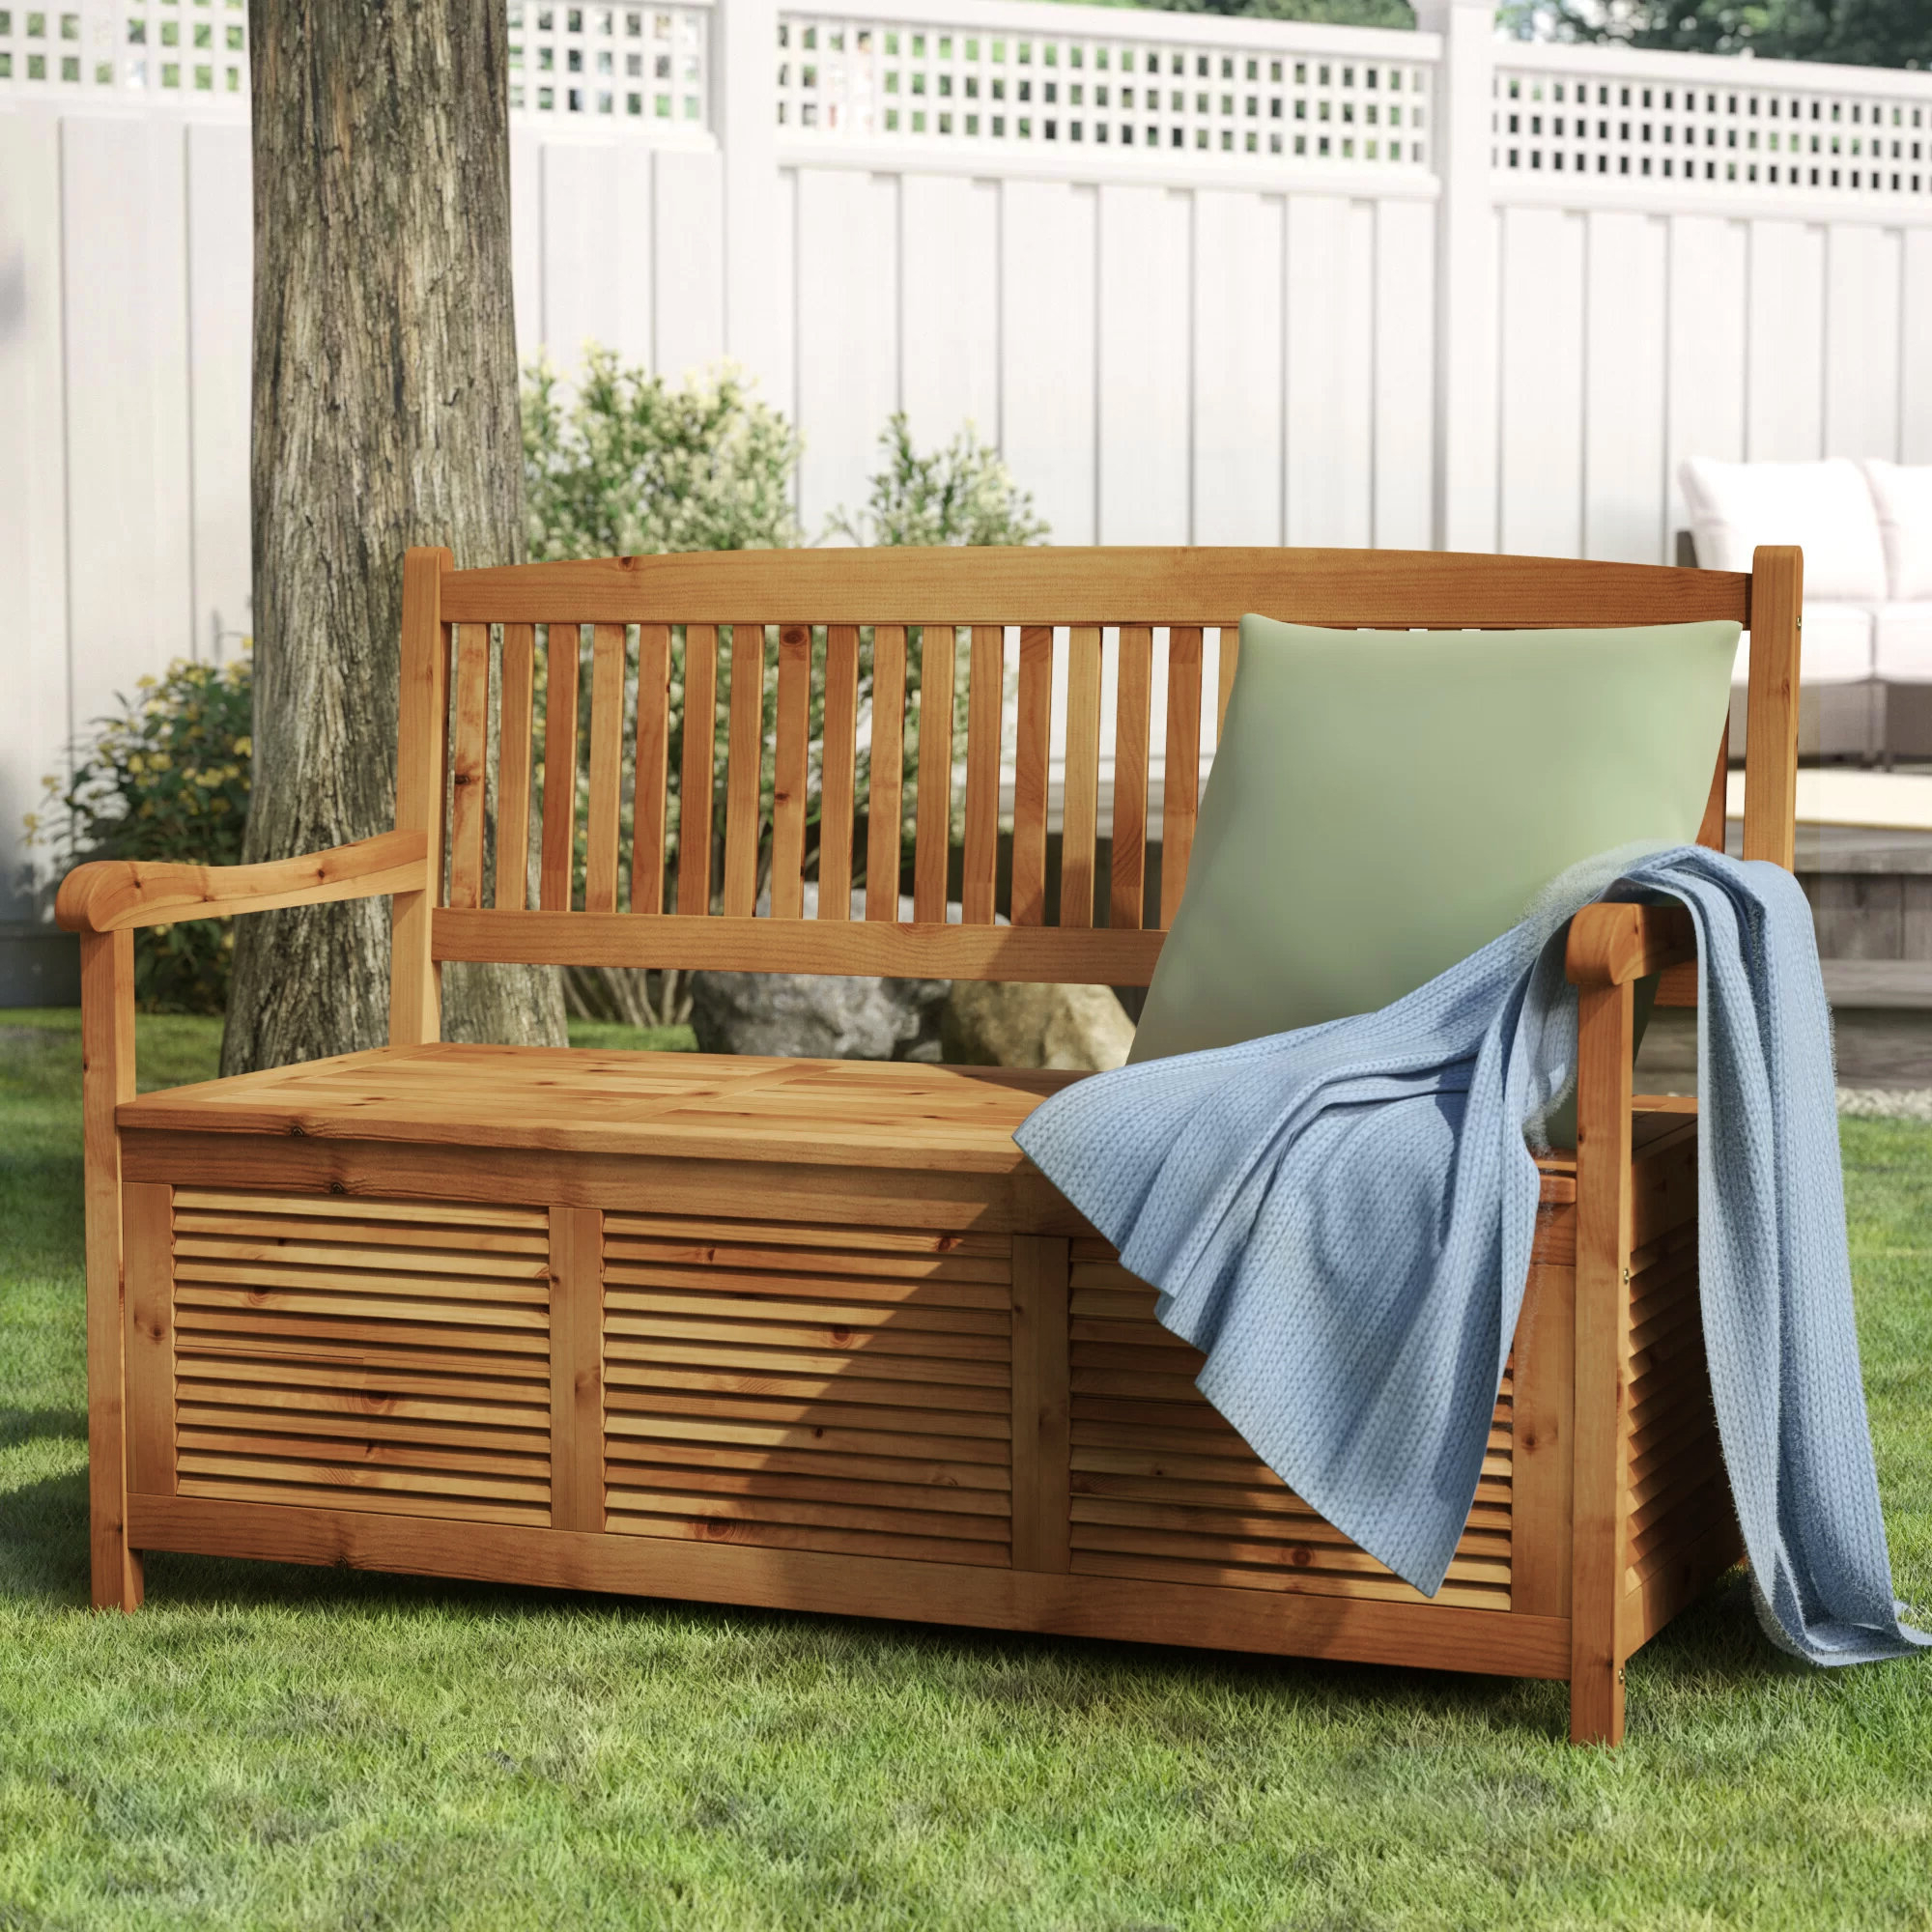 Widely Used Zephyrine Patio Dining Wooden Picnic Bench Within Lucille Timberland Wooden Garden Benches (View 10 of 30)